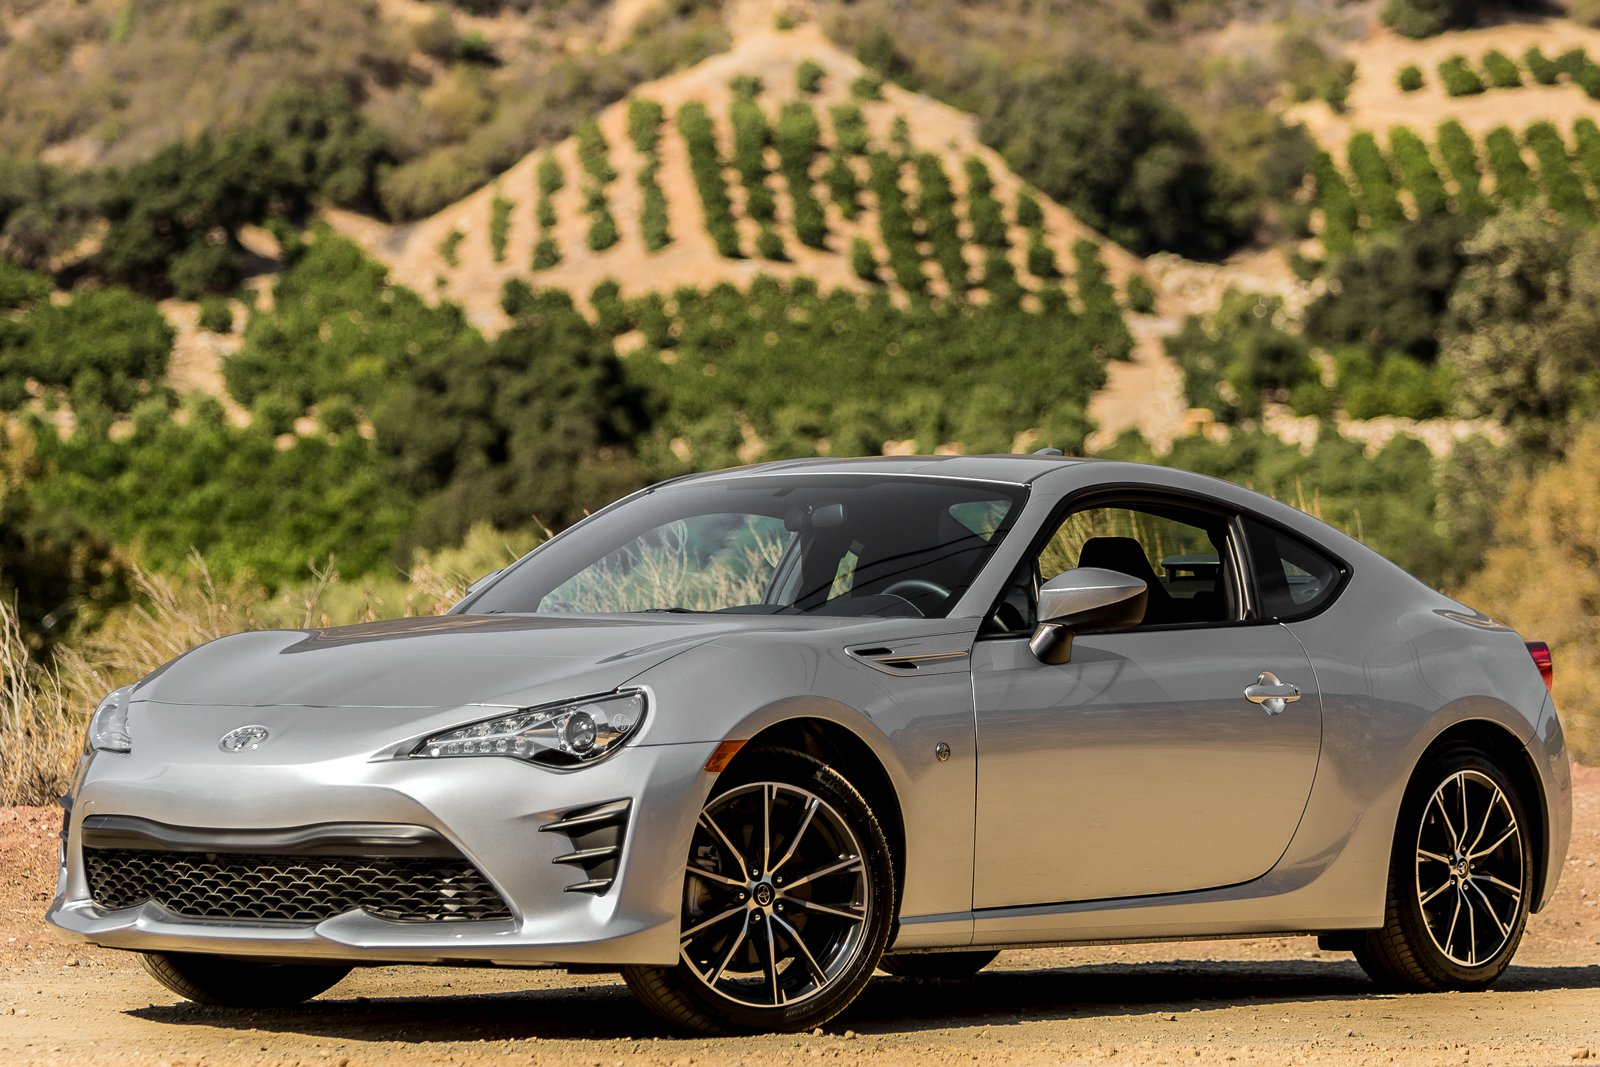 2017 toyota 86 cars exclusive videos and photos updates for Toyota 86 exterior mods